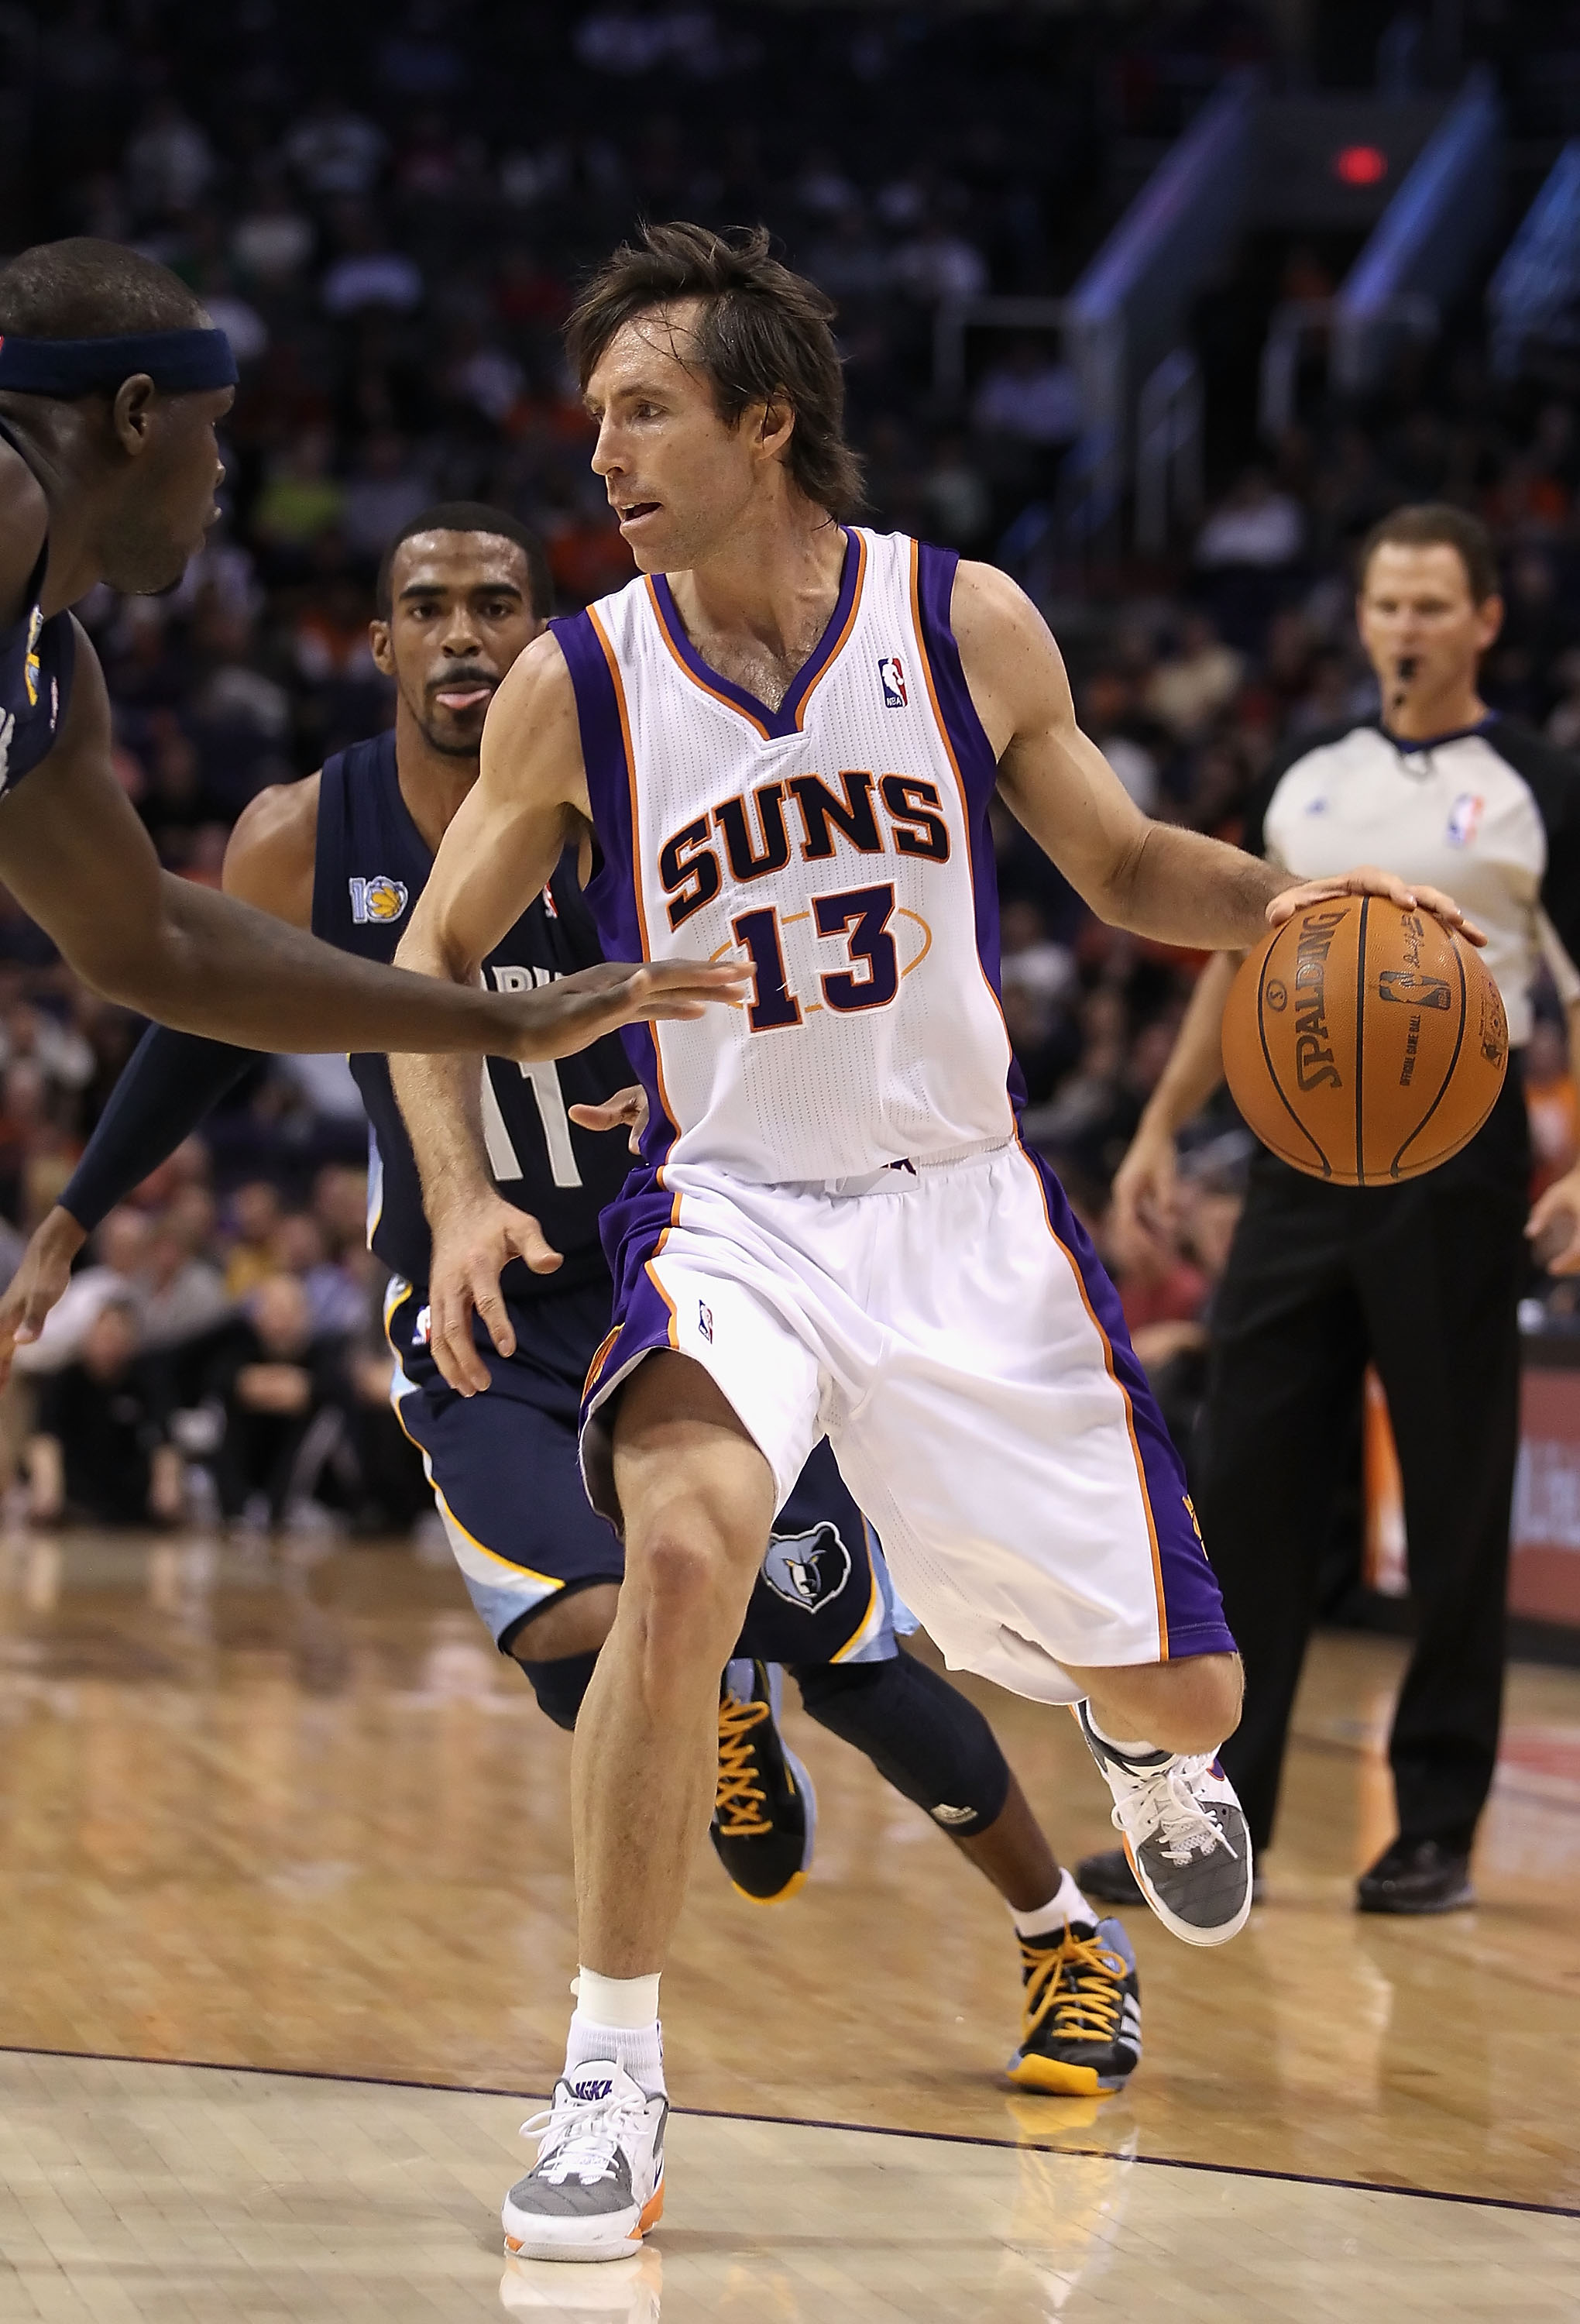 PHOENIX - DECEMBER 08:  Steve Nash #13 of the Phoenix Suns hanldes the ball during the NBA game against the Memphis Grizzlies at US Airways Center on December 8, 2010 in Phoenix, Arizona. NOTE TO USER: User expressly acknowledges and agrees that, by downl